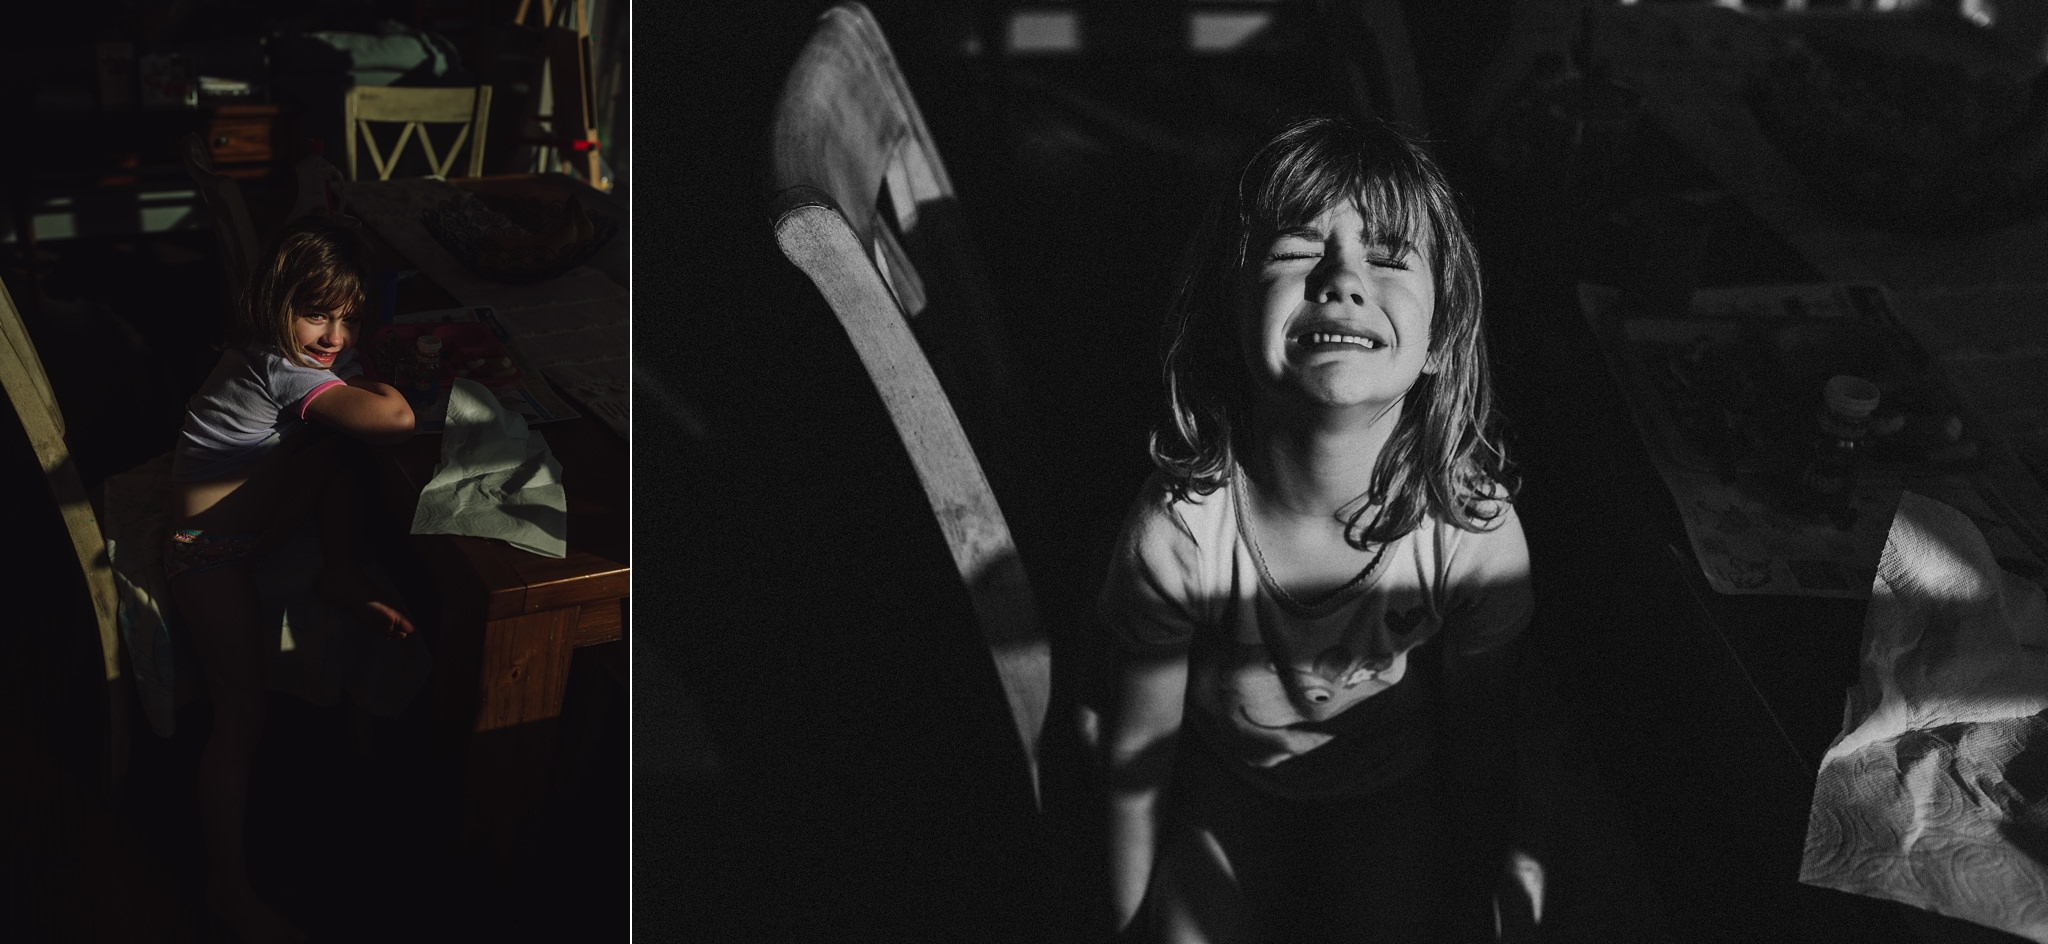 girl makes happy and sad faces in harsh window light | Whidbey Island family photographer